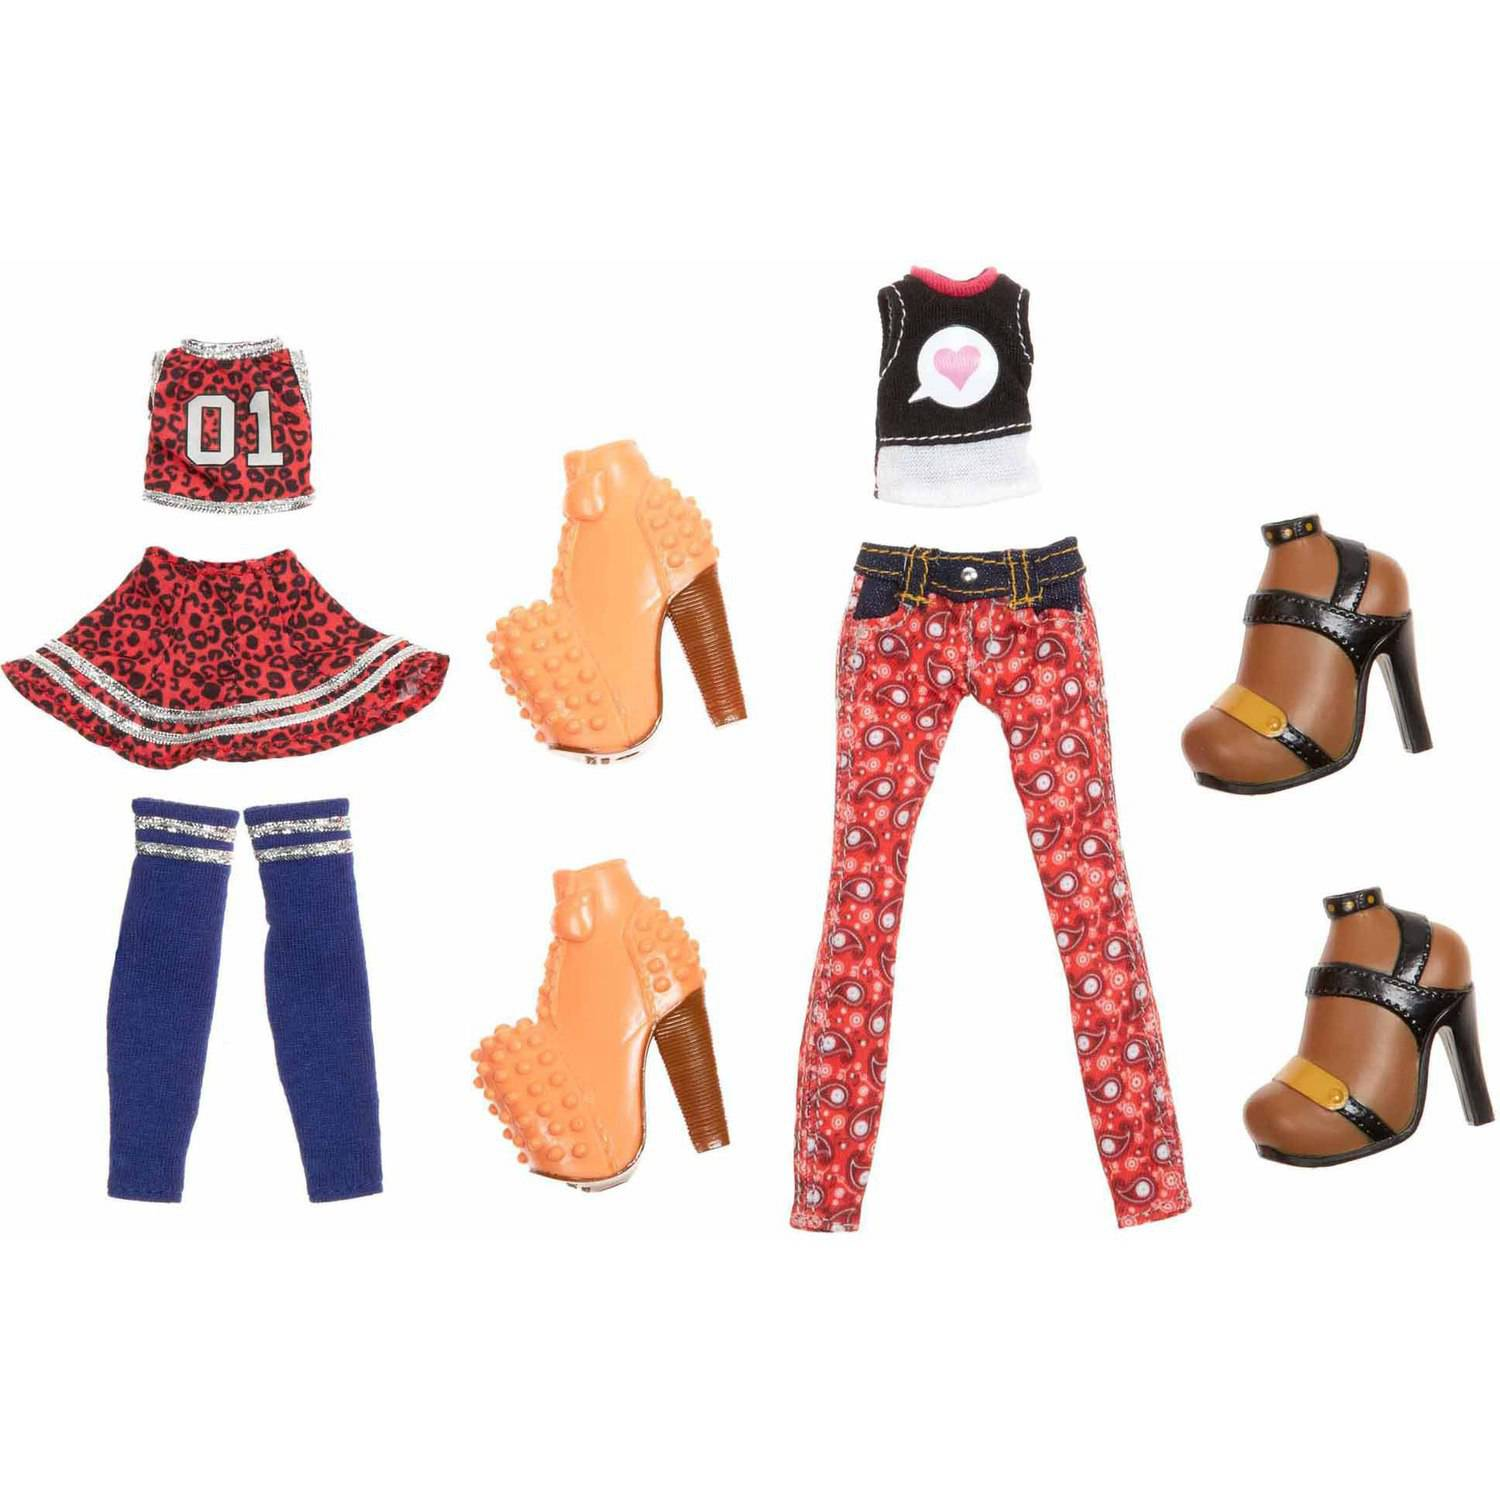 Bratz Deluxe Fashion Pack Doll Clothes 7 pc Pack by MGA Entertainment